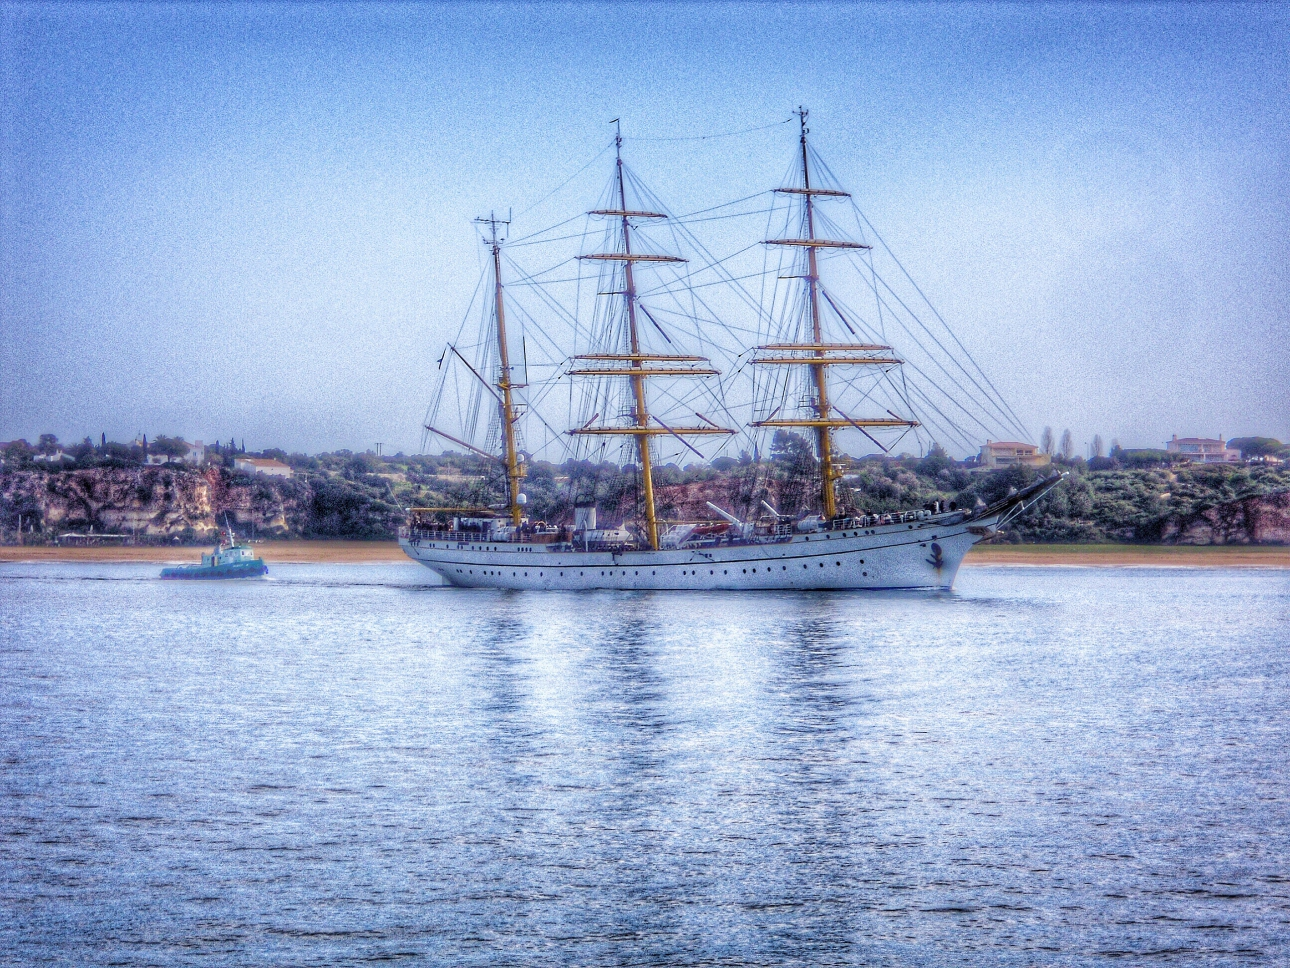 Gorch Fock in Portimao 2014